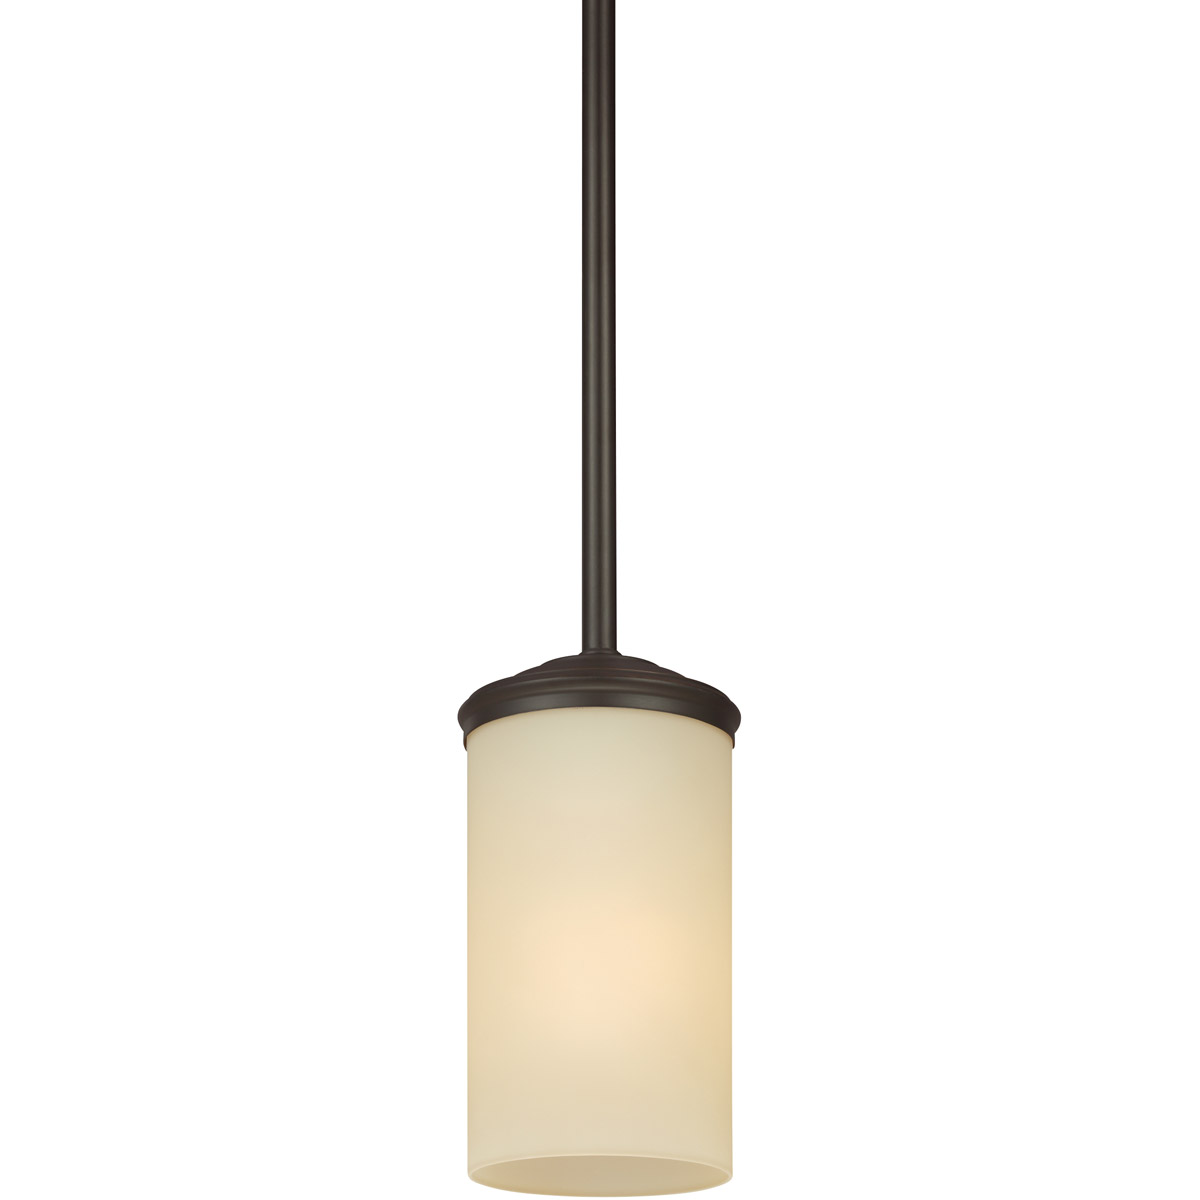 Sea Gull Sfera 1 Light Mini Pendant in Autumn Bronze 6190401-715